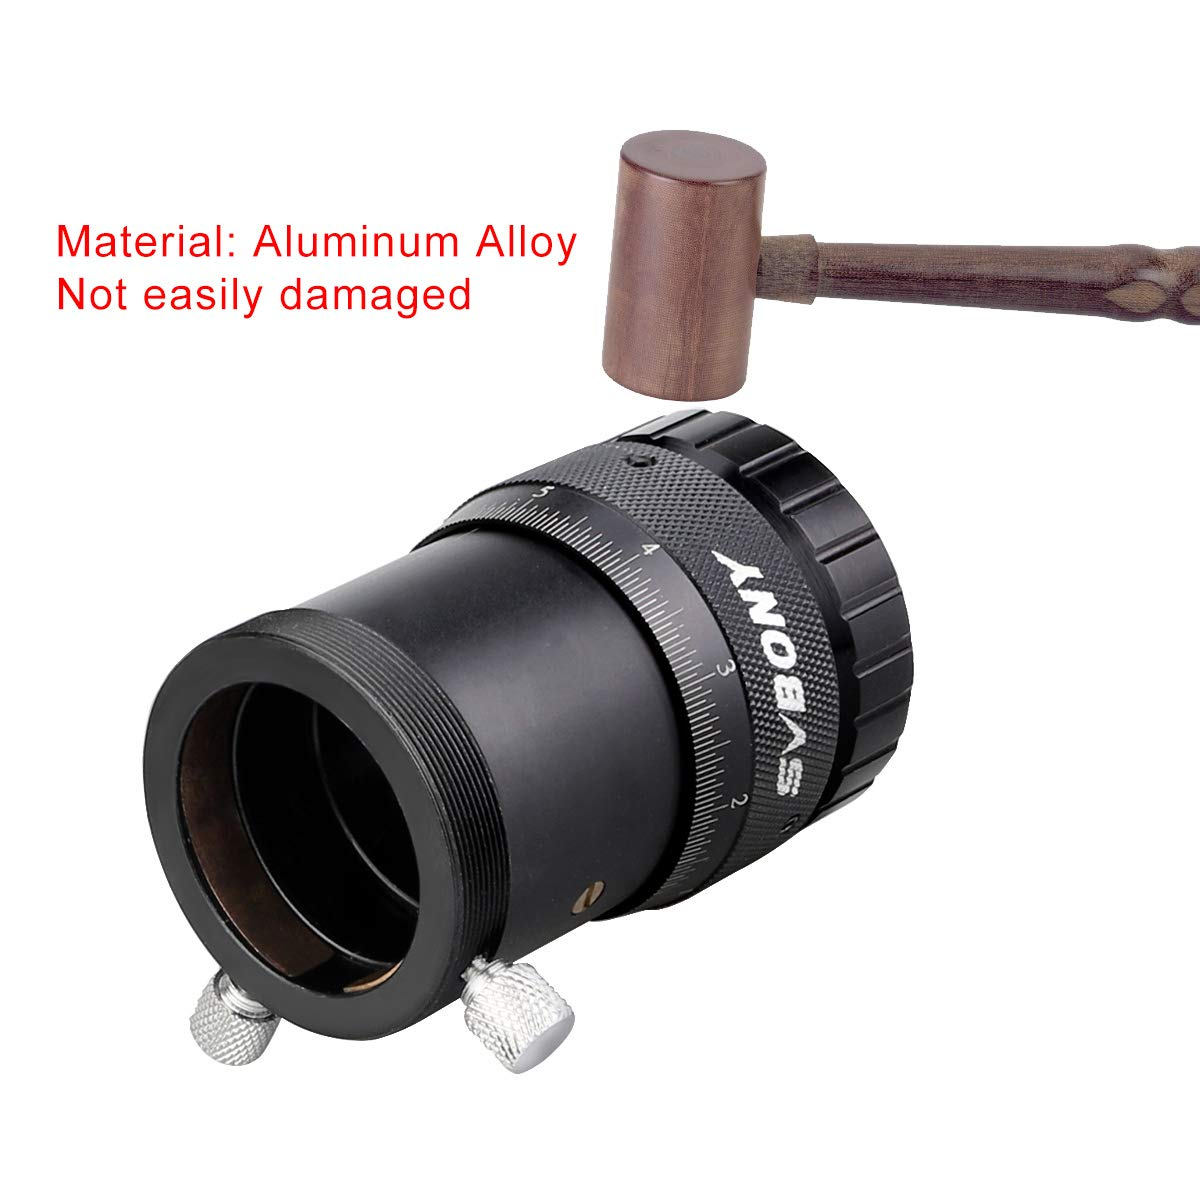 SVBONY SV151 Double Helical Focuser High Precision 1.25 inch With Female Thread Adapter M31x0.5 Female Thread to M42x0.75 T2 Female Thread Adapter for Telescope Lens Finder Guidescope